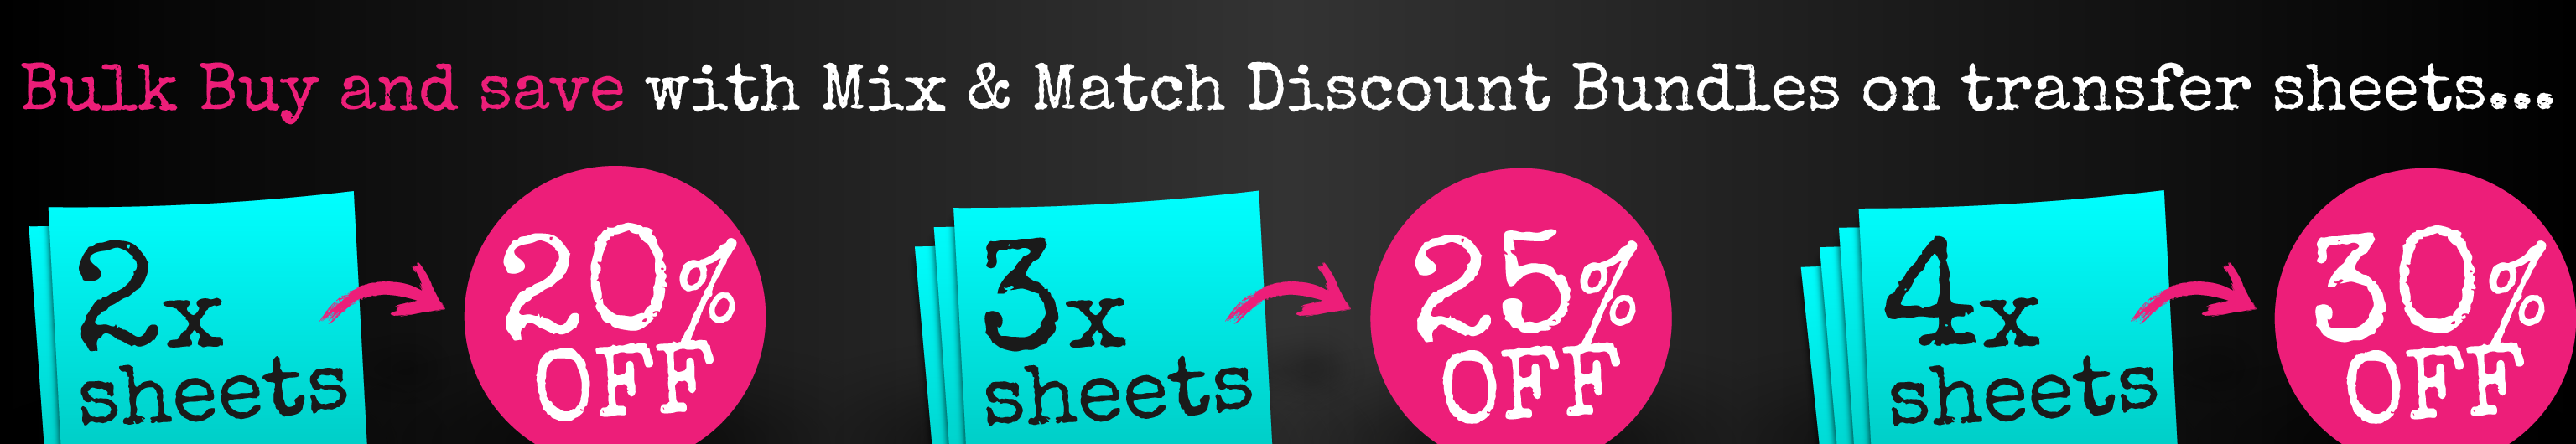 Bulk Buy and save with Mix & Match Discount Bundles on transfer sheets...